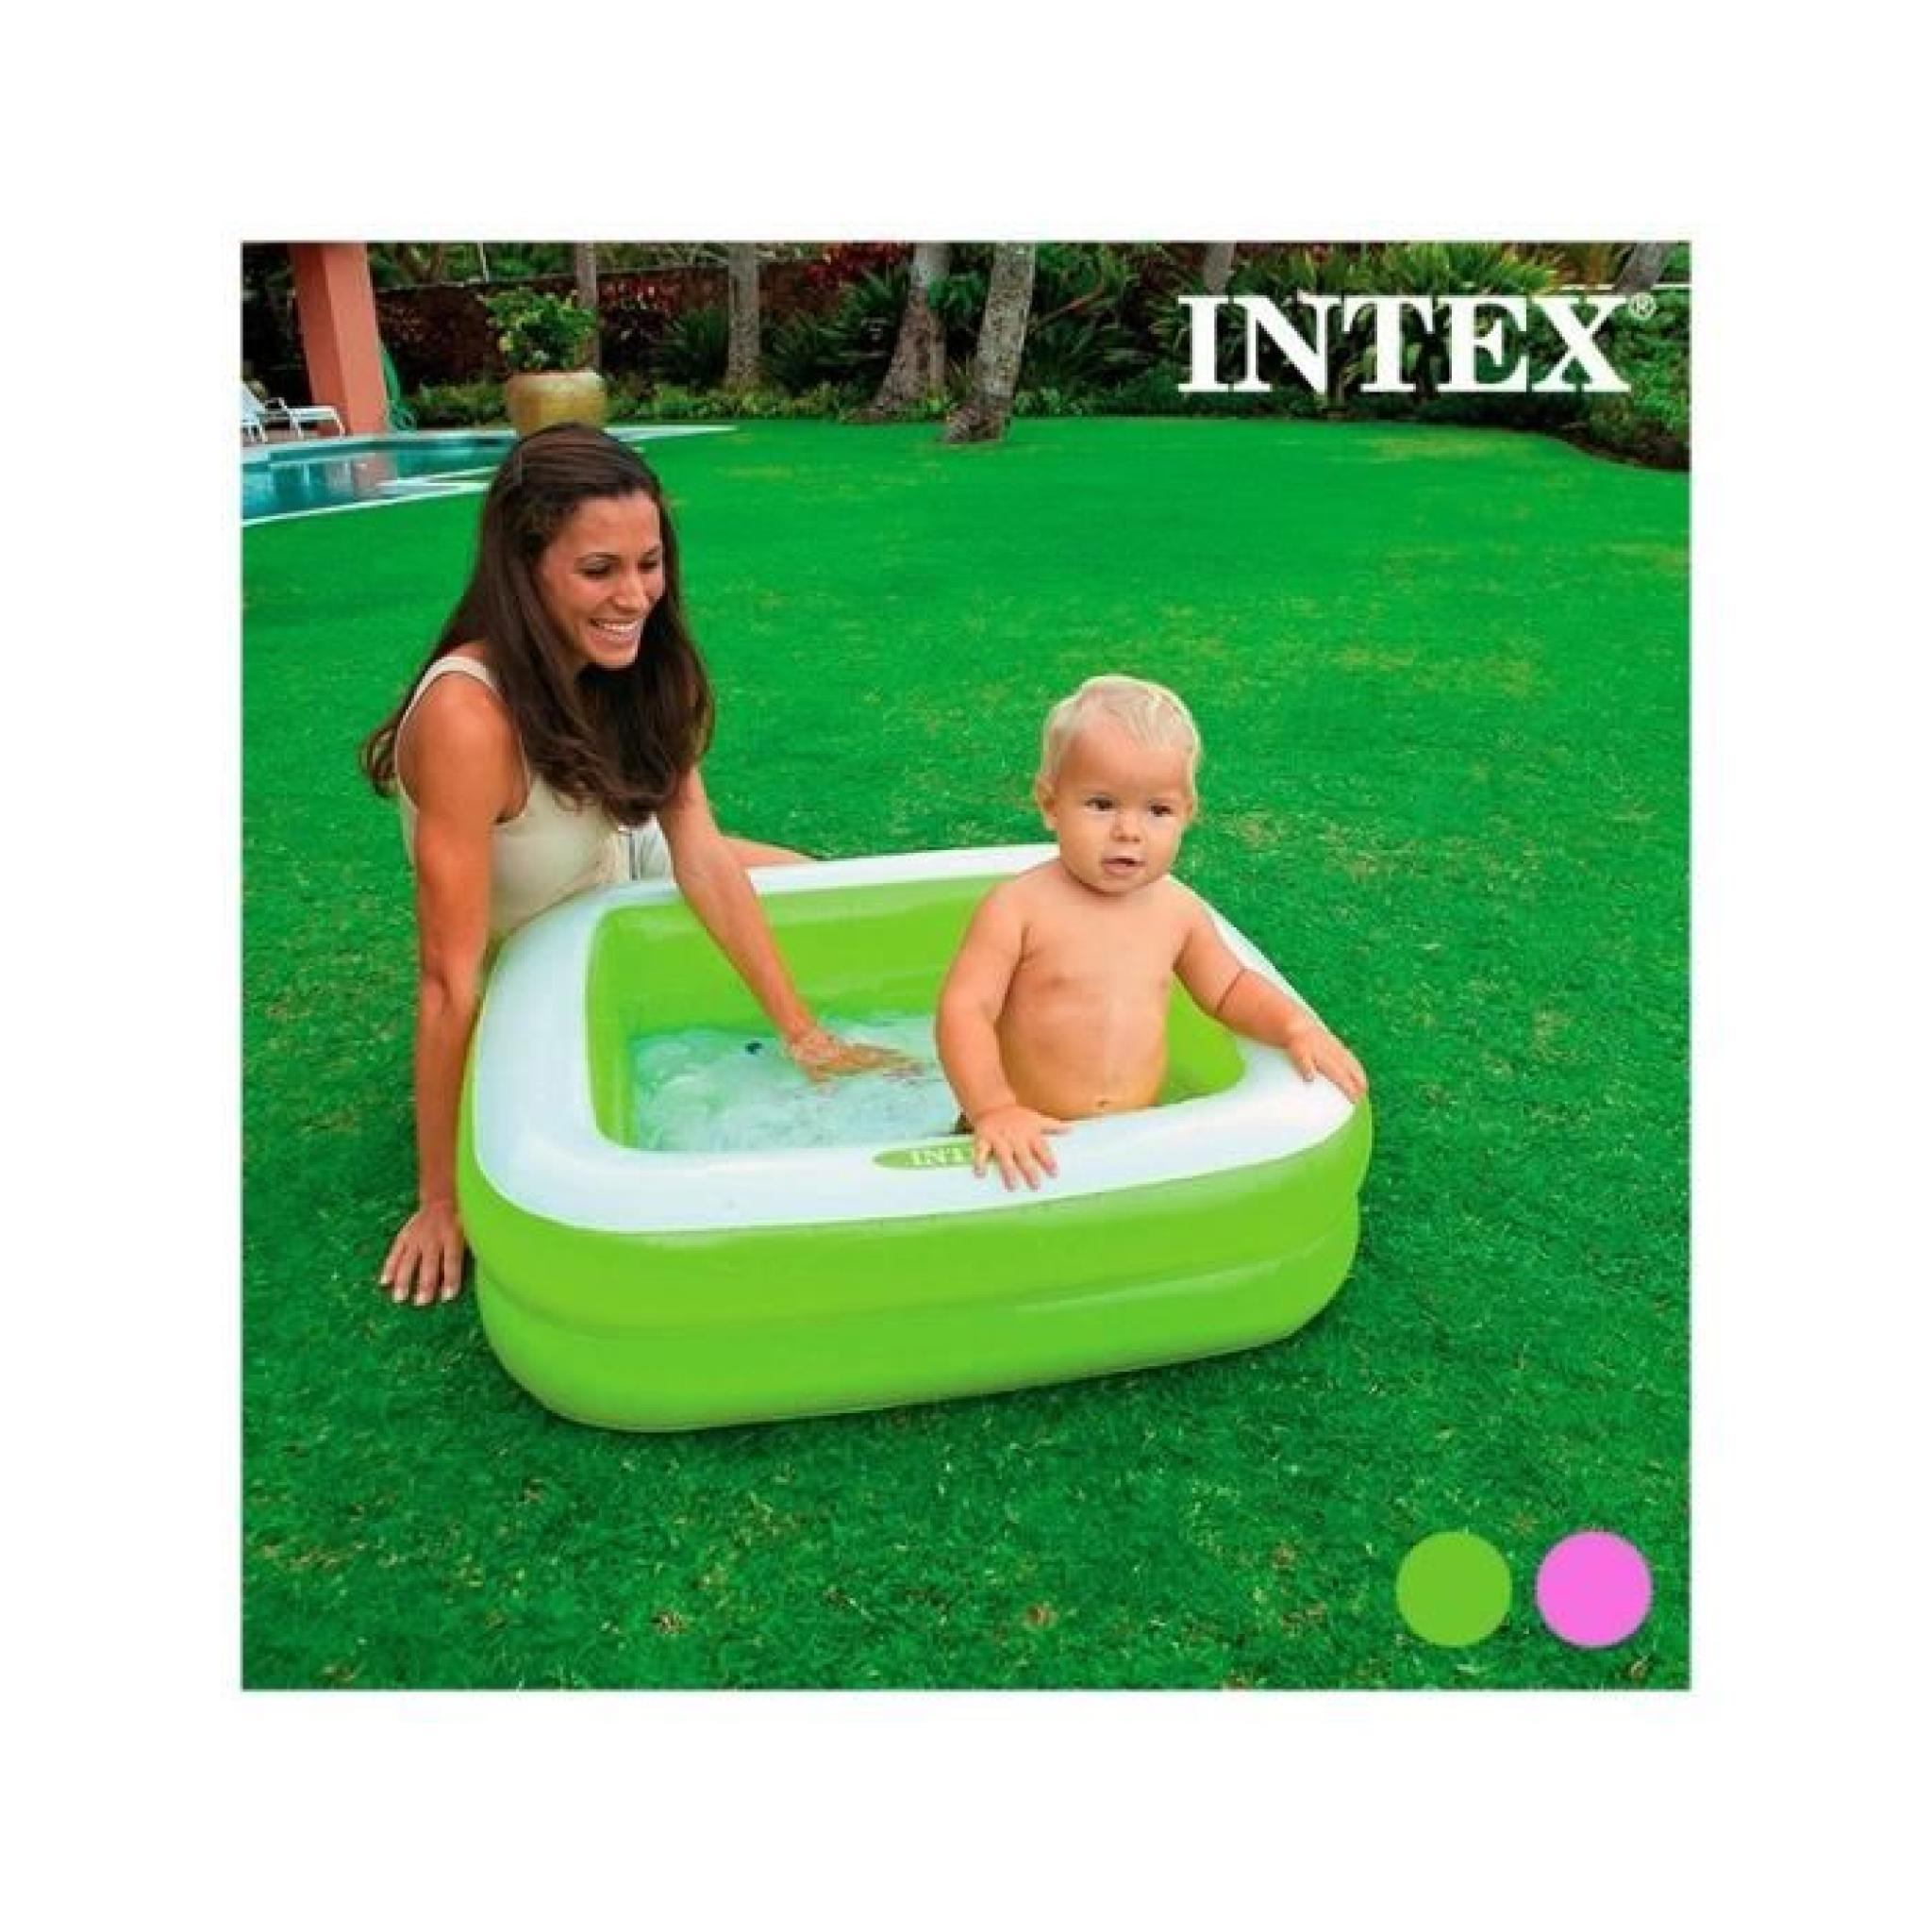 piscine gonflable carr e pour enfants intex rose. Black Bedroom Furniture Sets. Home Design Ideas